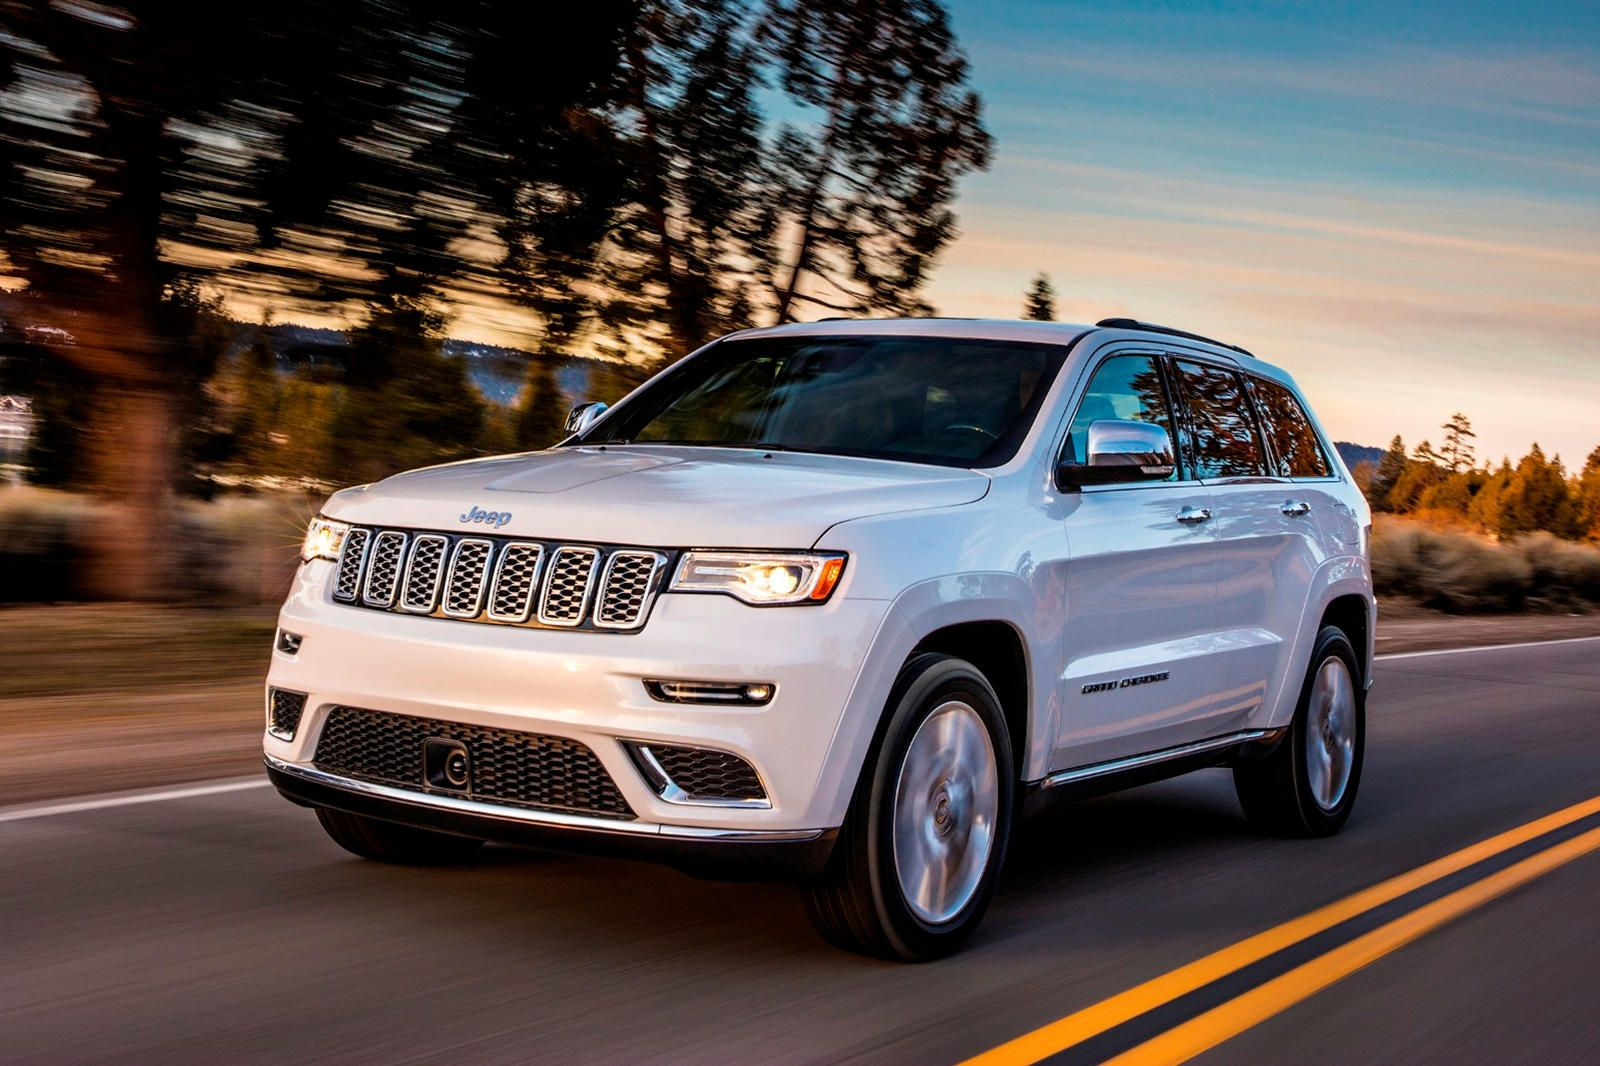 2019 Jeep Grand Cherokee Arrives With New Standard Safety Tech And Limited X Model 2017 Jeep Grand Cherokee Suv Cars Jeep Grand